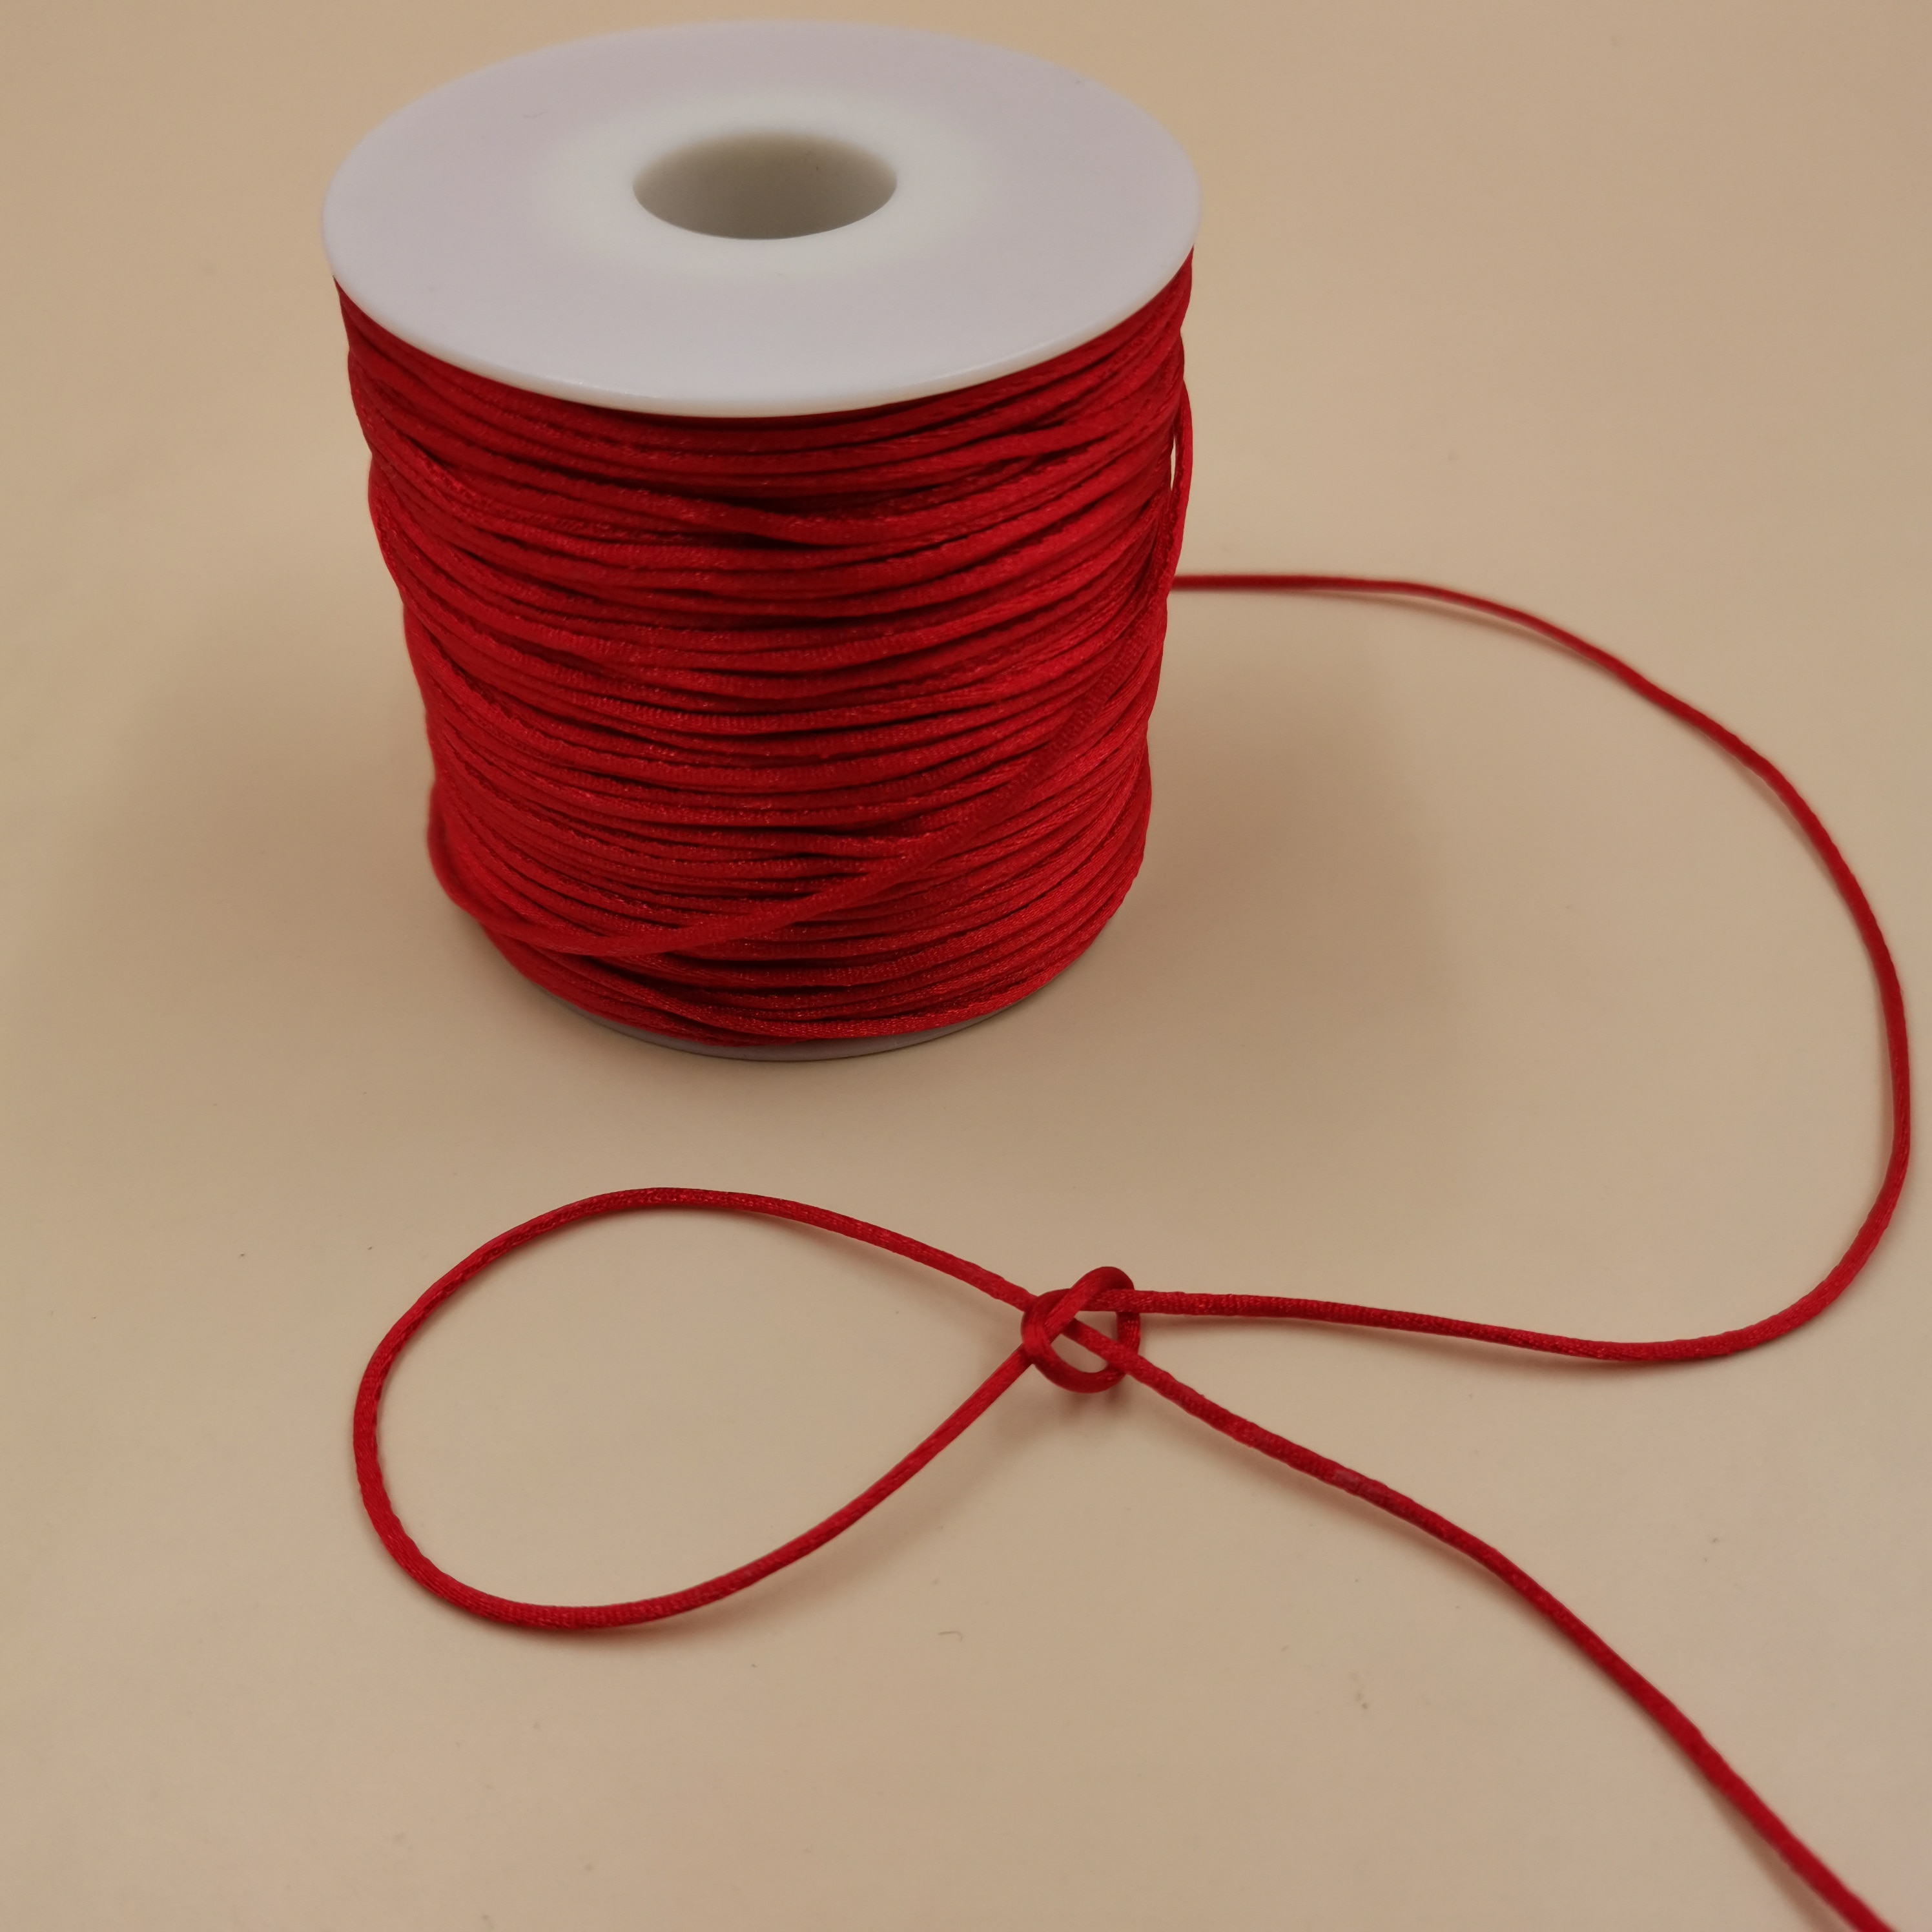 2017 0 8mm 100m spool macrame rope satin rattail nylon cords string kumihimo chinese knot cord diy bracelet jewelry findings 1mm Red Chinese Knot Rattail Satin Cord Braided String Jewelry Findings Beading Rope #R700